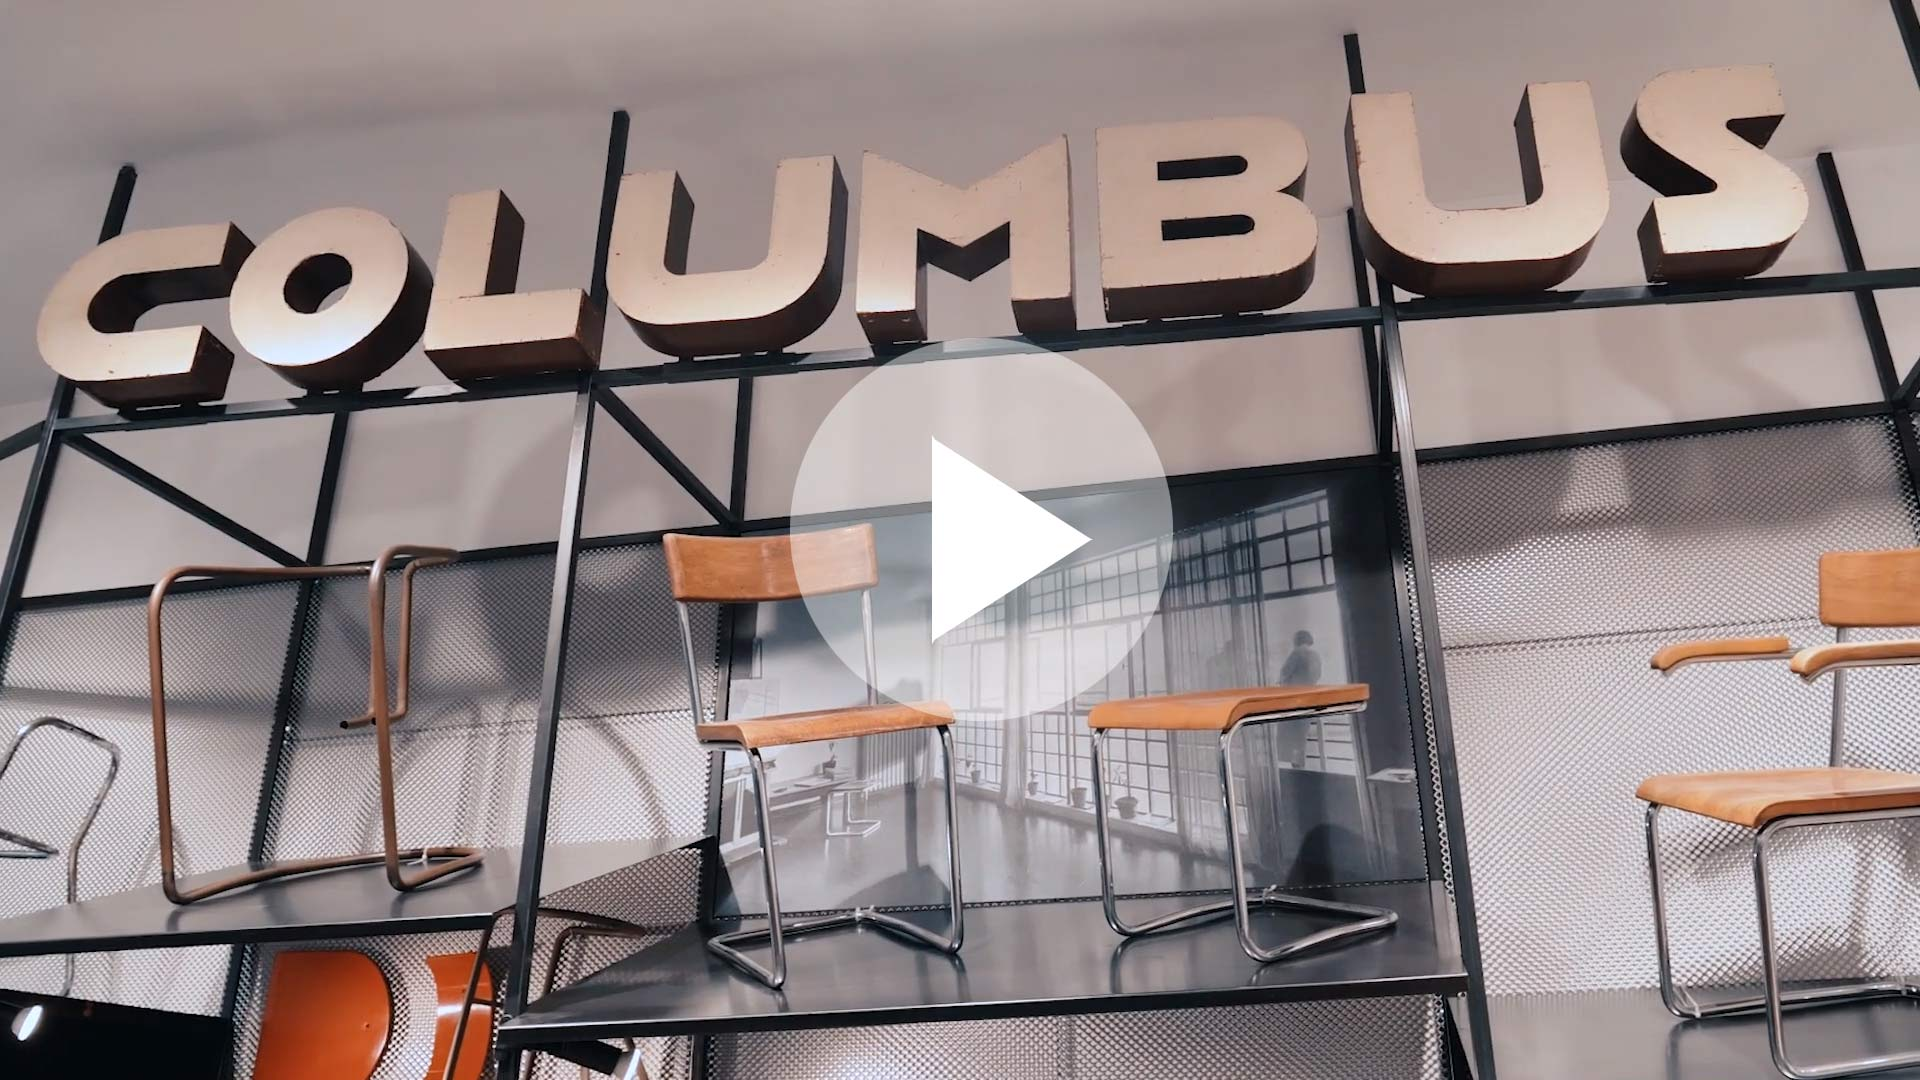 Columbus Continuum: Flessibili Splendori opening video